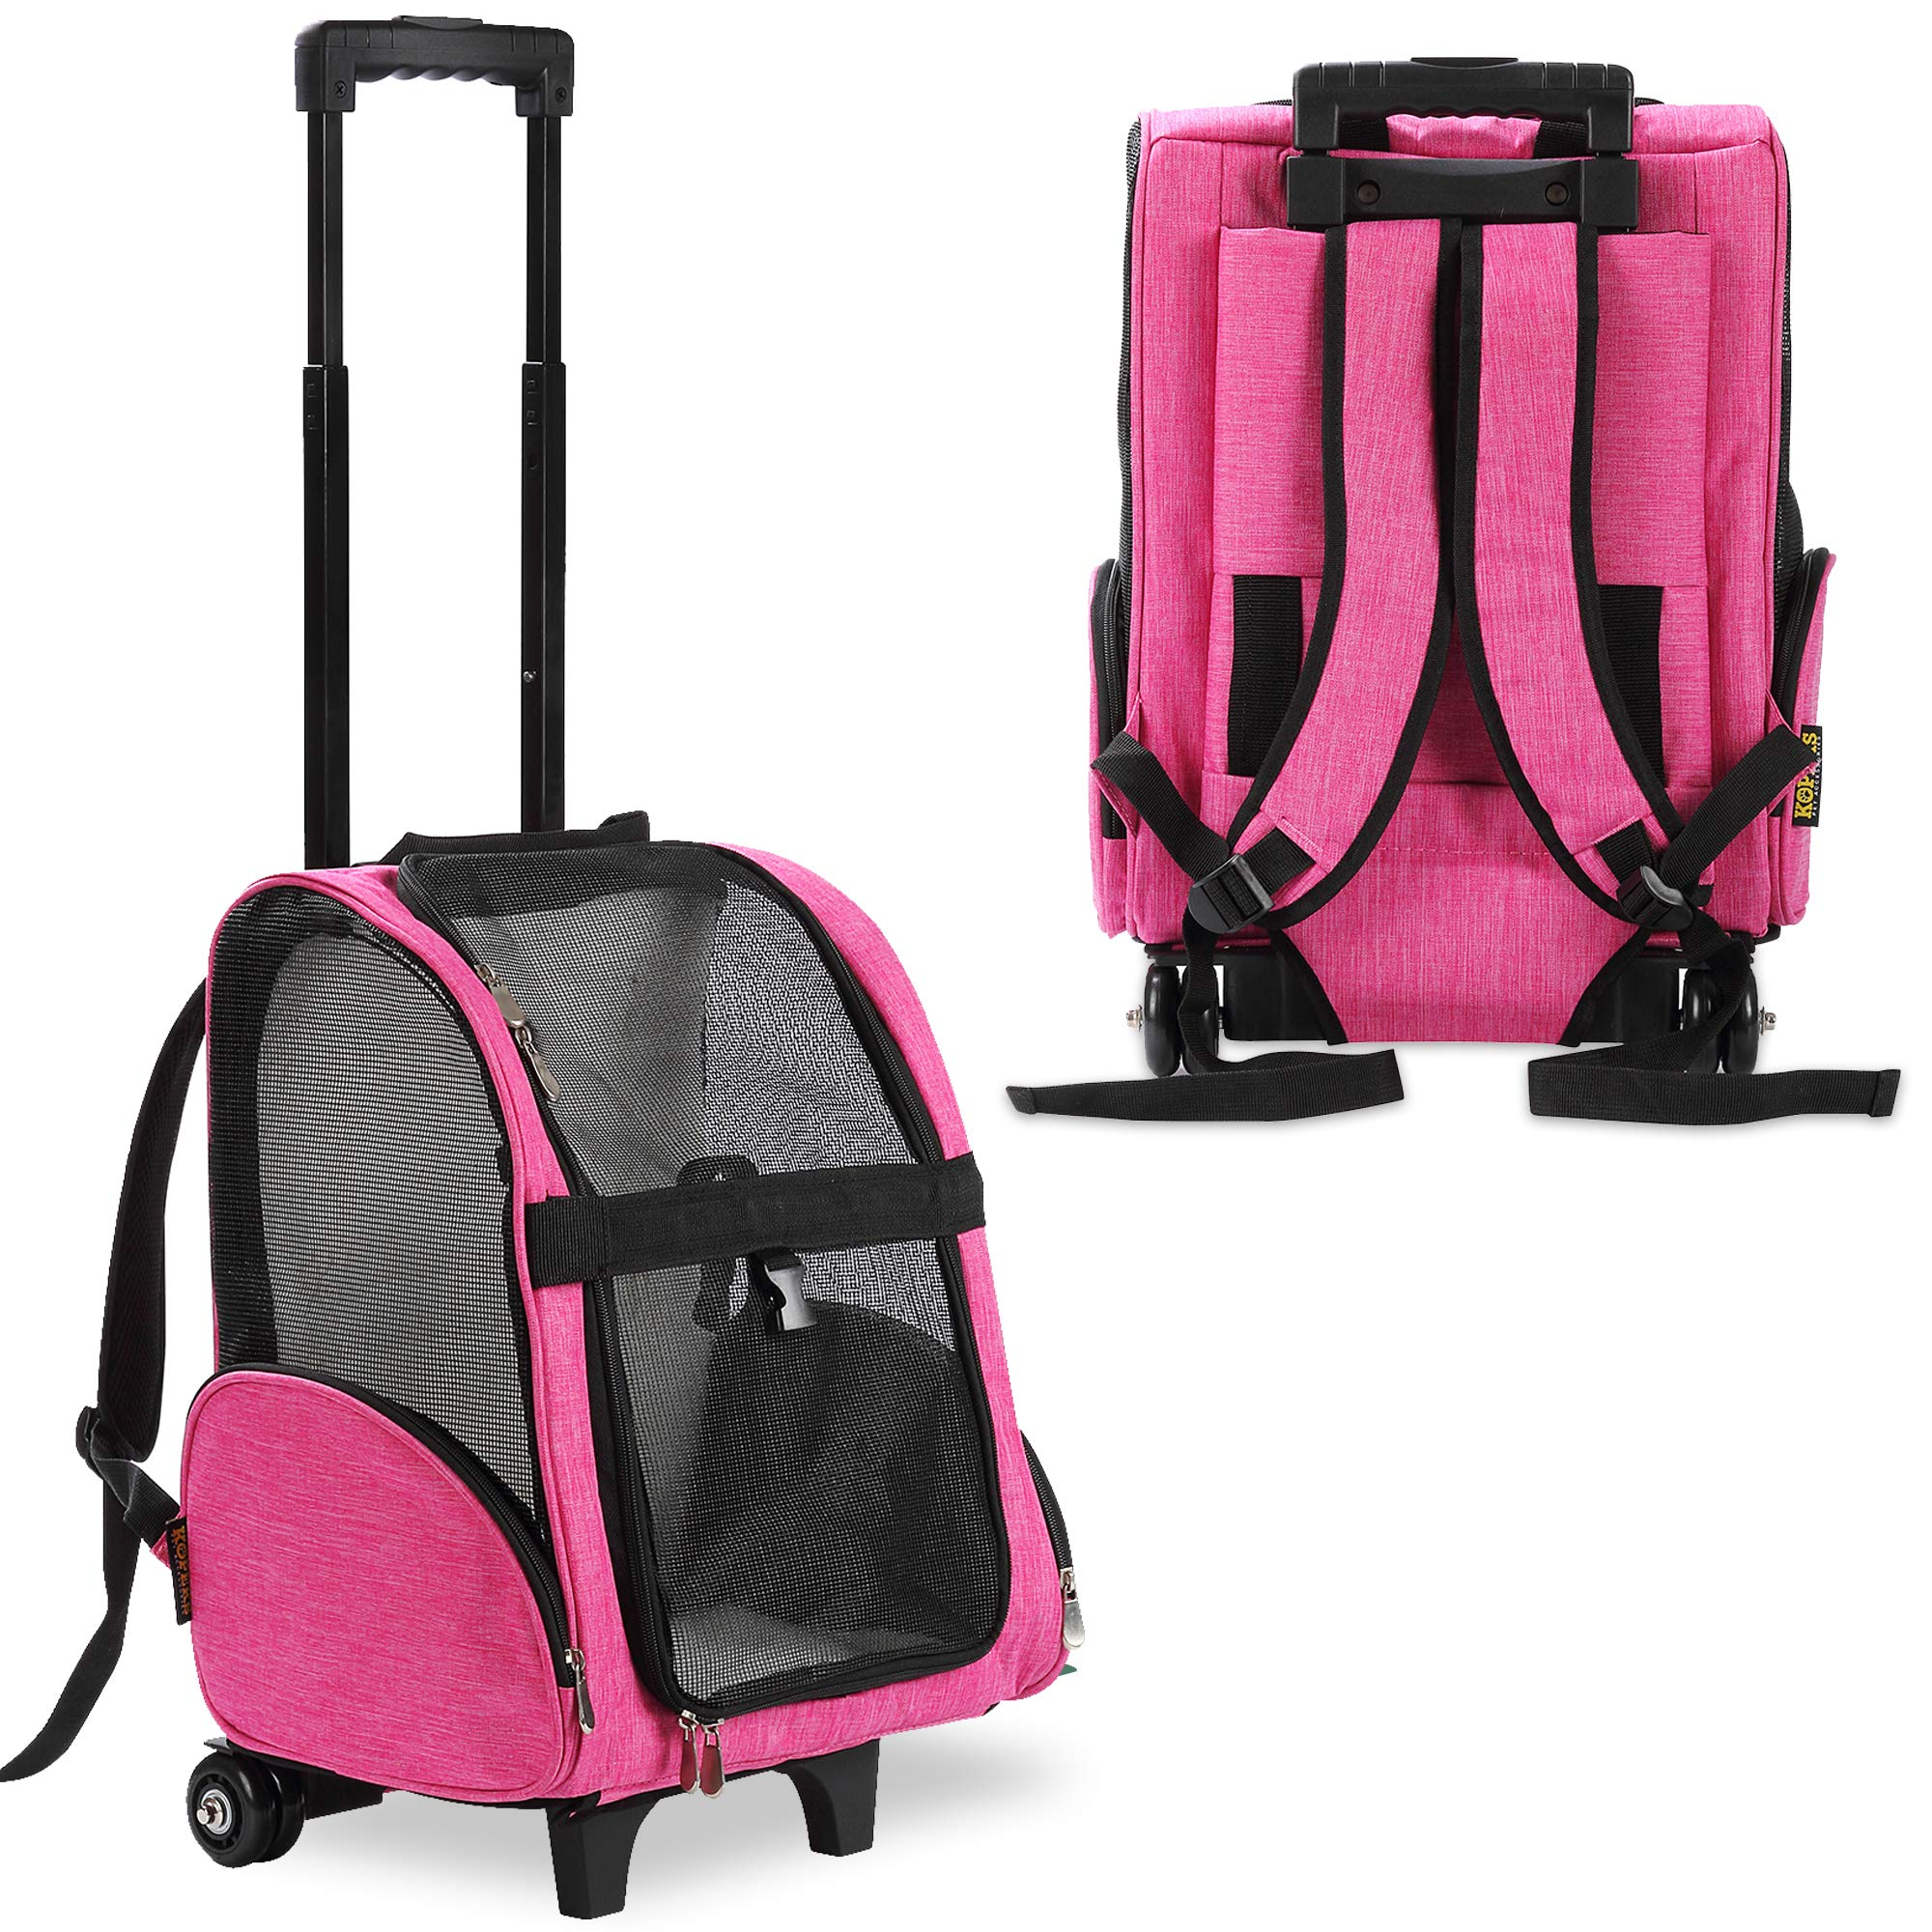 KOPEKS Deluxe Backpack Pet Travel Carrier with Double Wheels - Heather Pink - Approved by Most Airlines